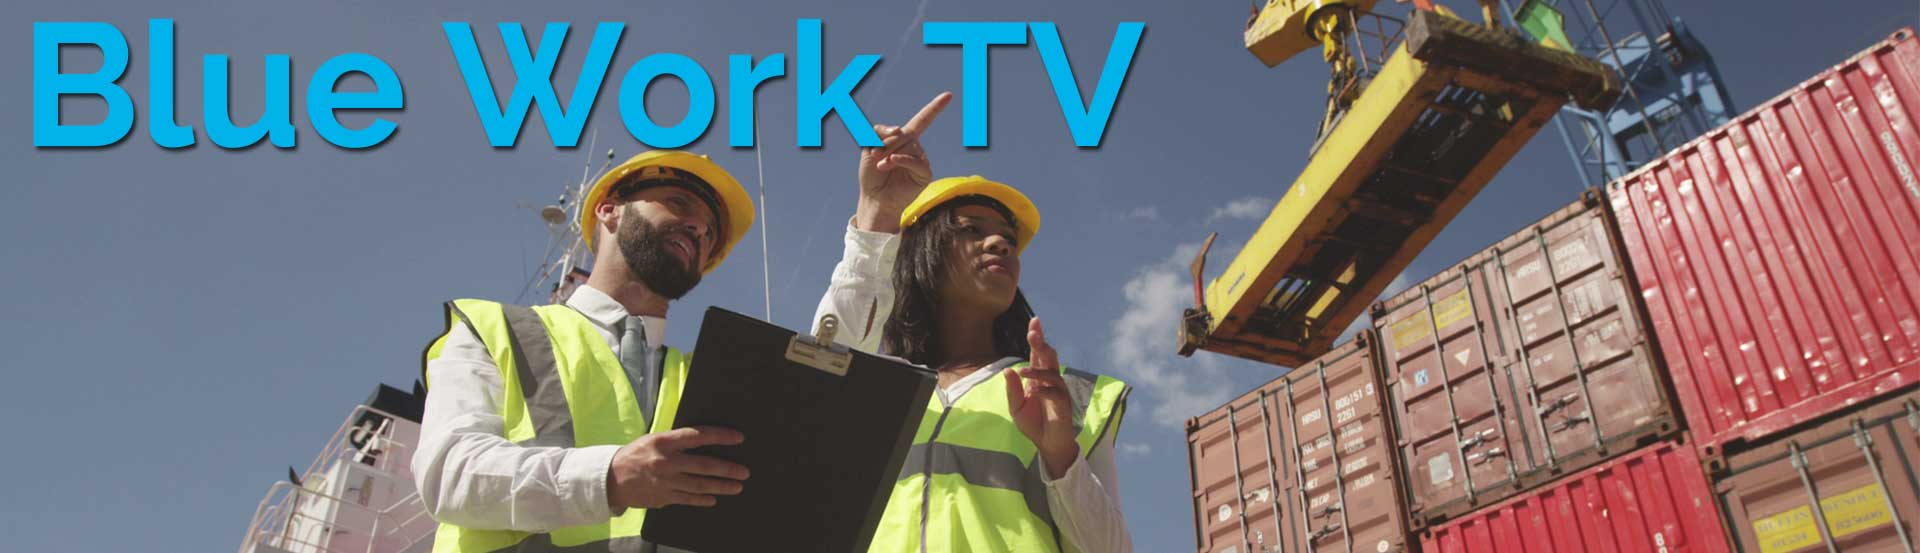 Blue Work TV